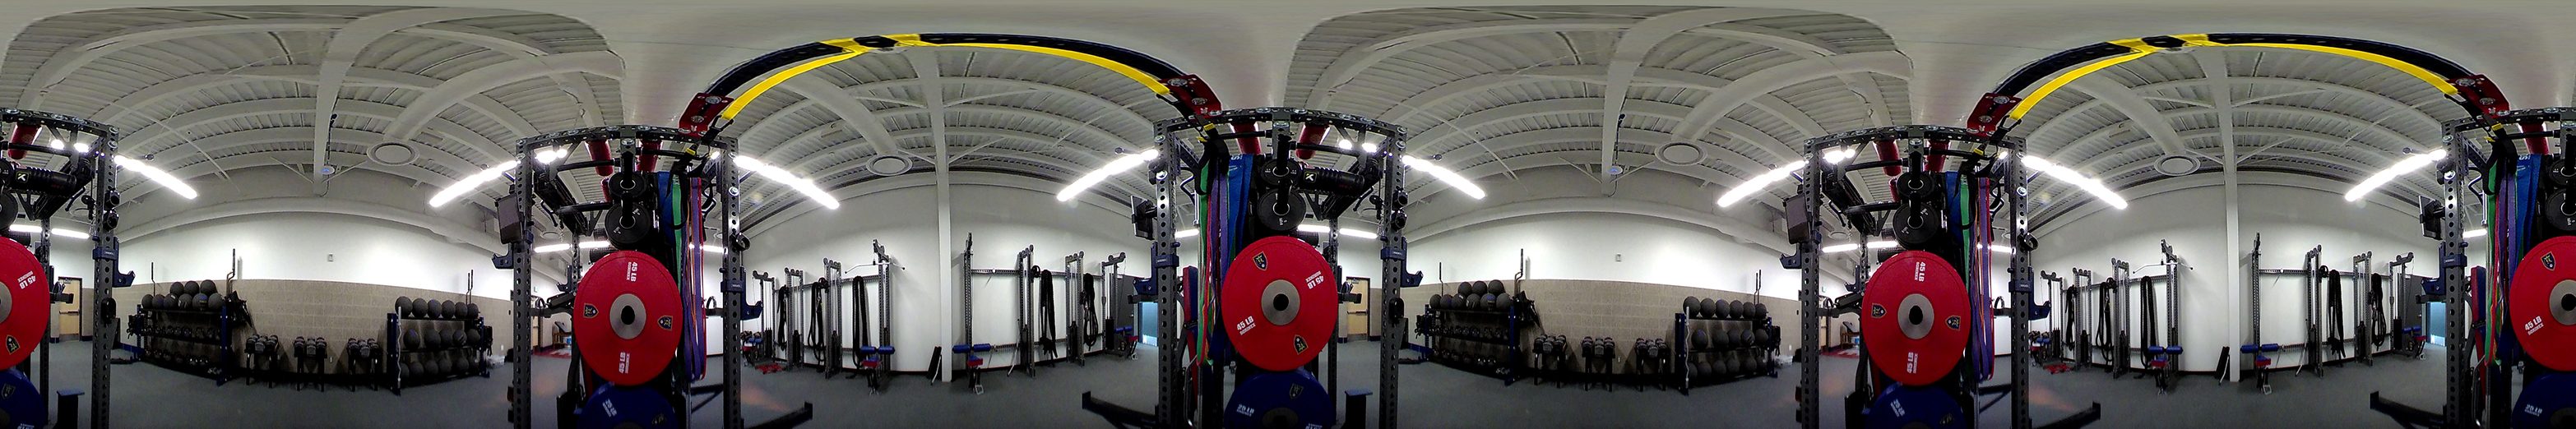 various free weights and weight machines are available for use in the weight room